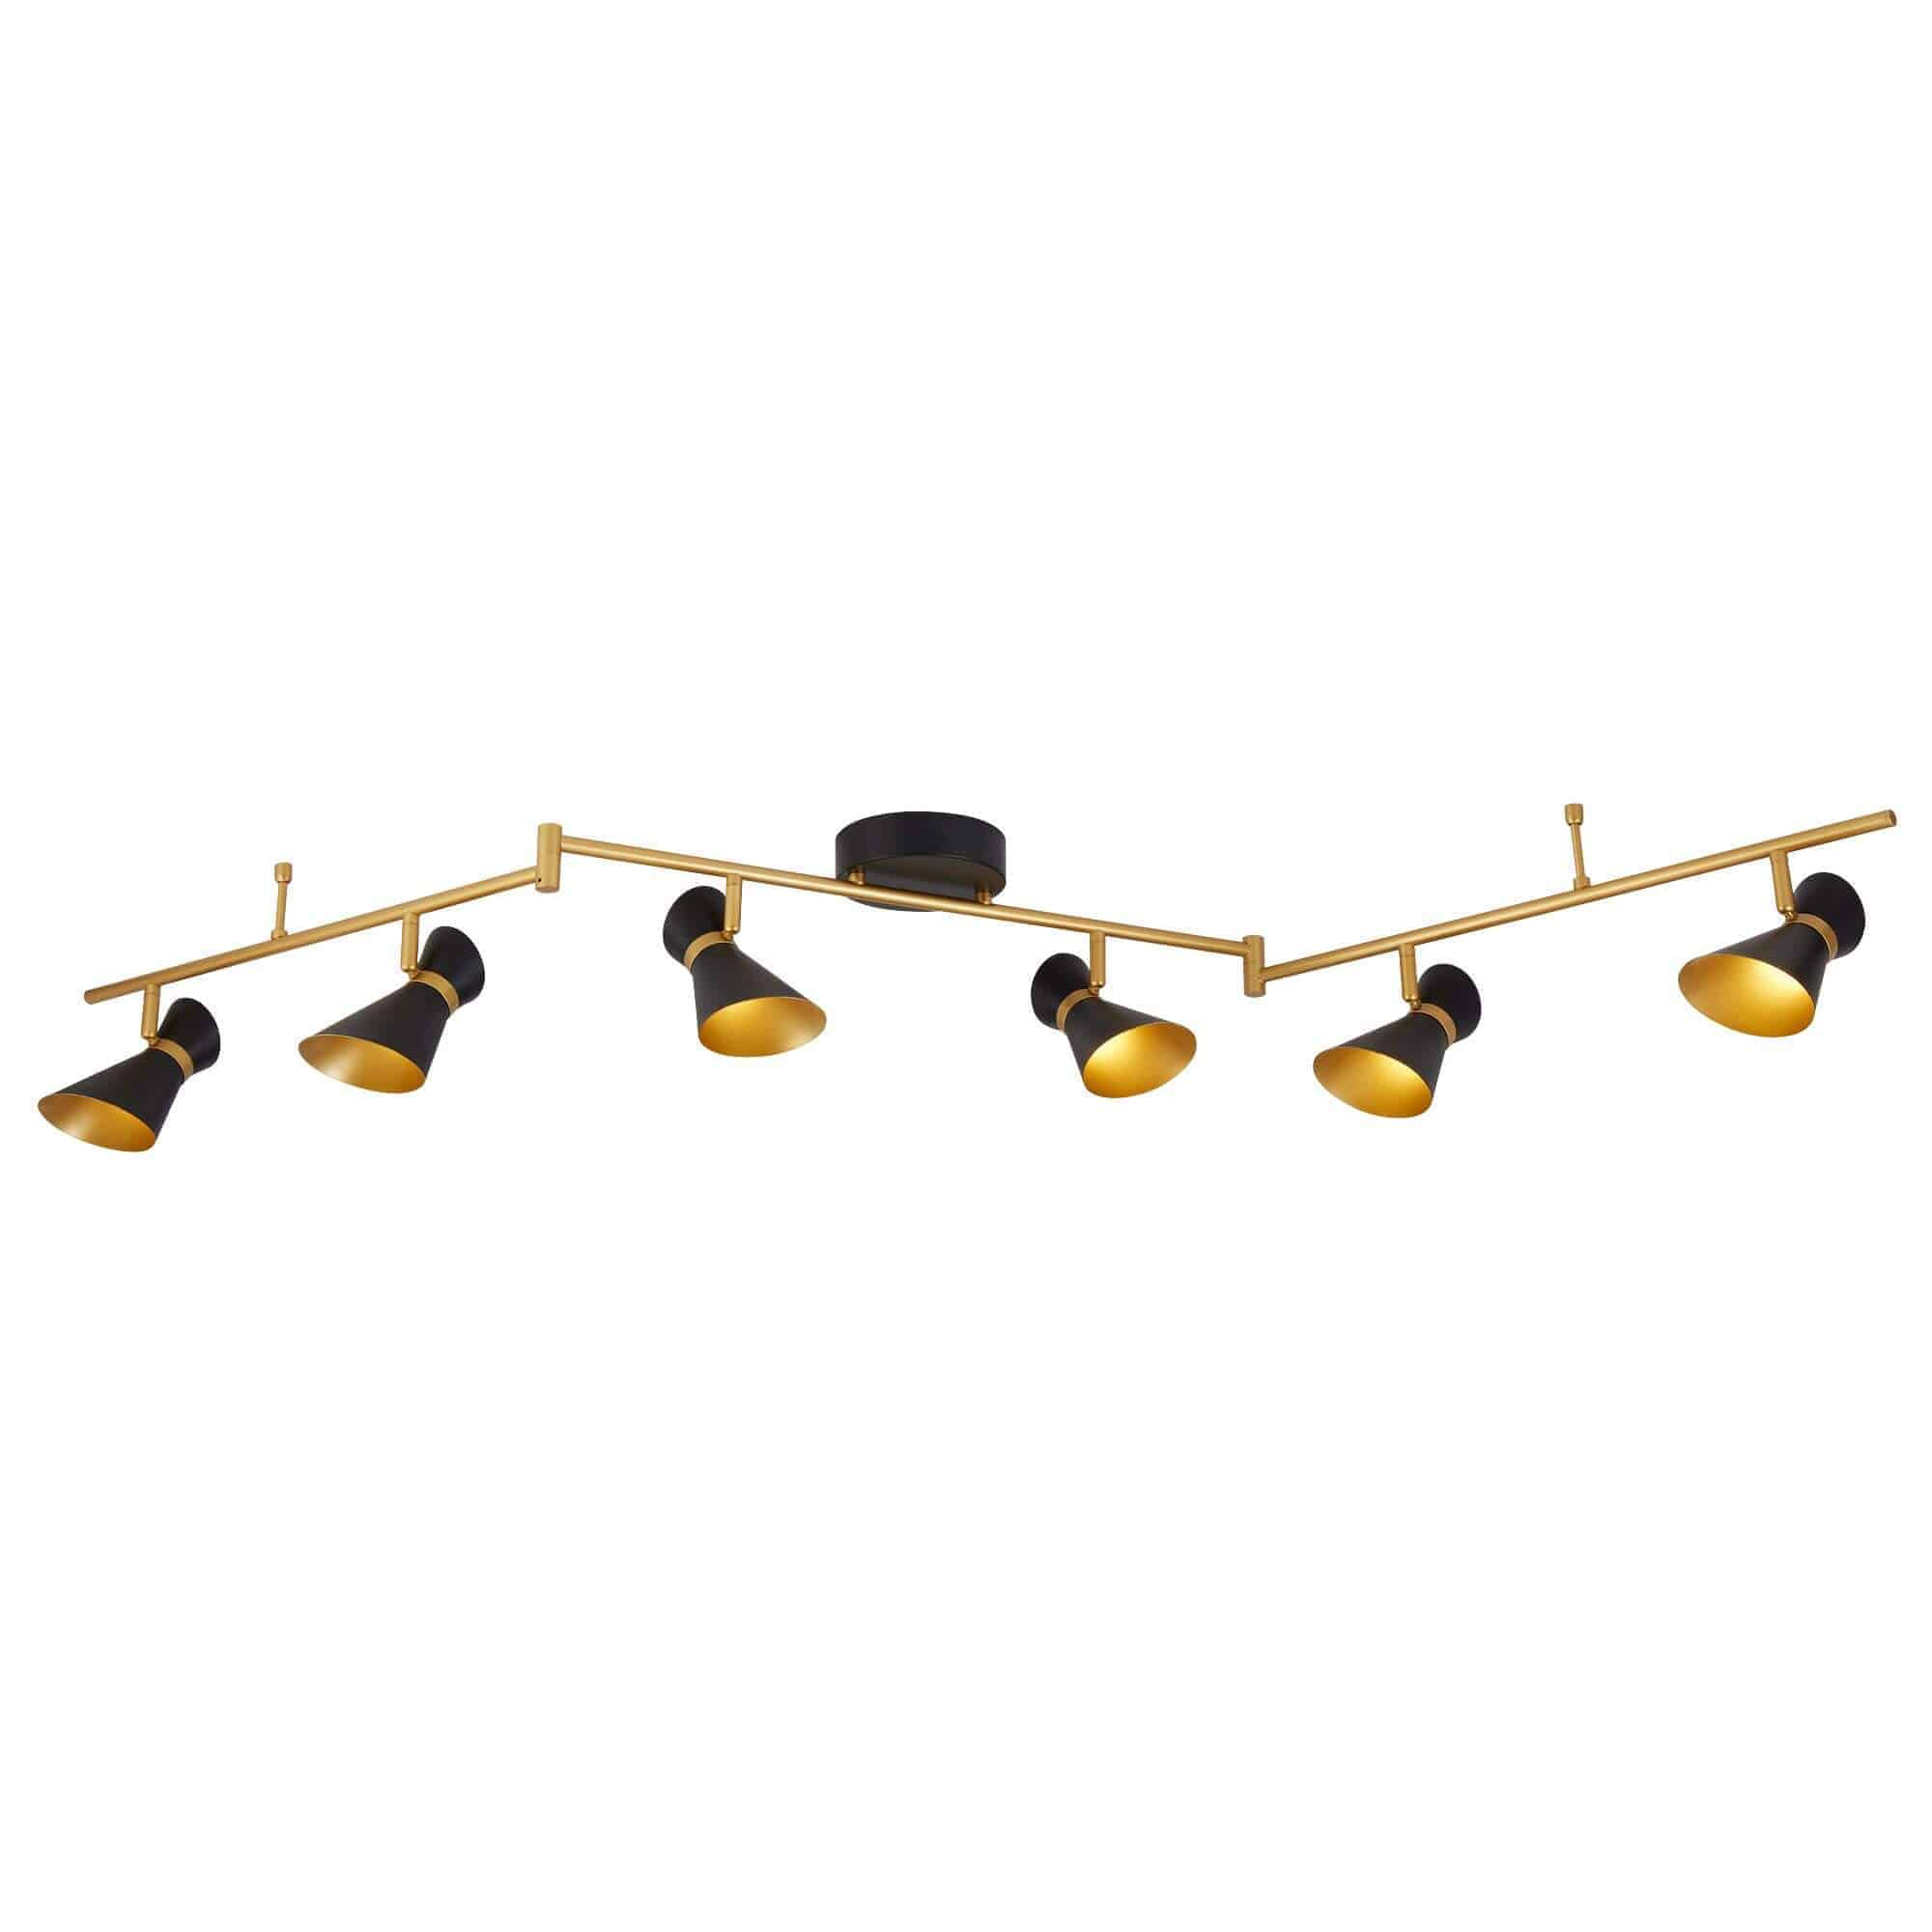 5926BG – Searchlight Diablo Black & Gold 6 Light LED Spotlight Bar